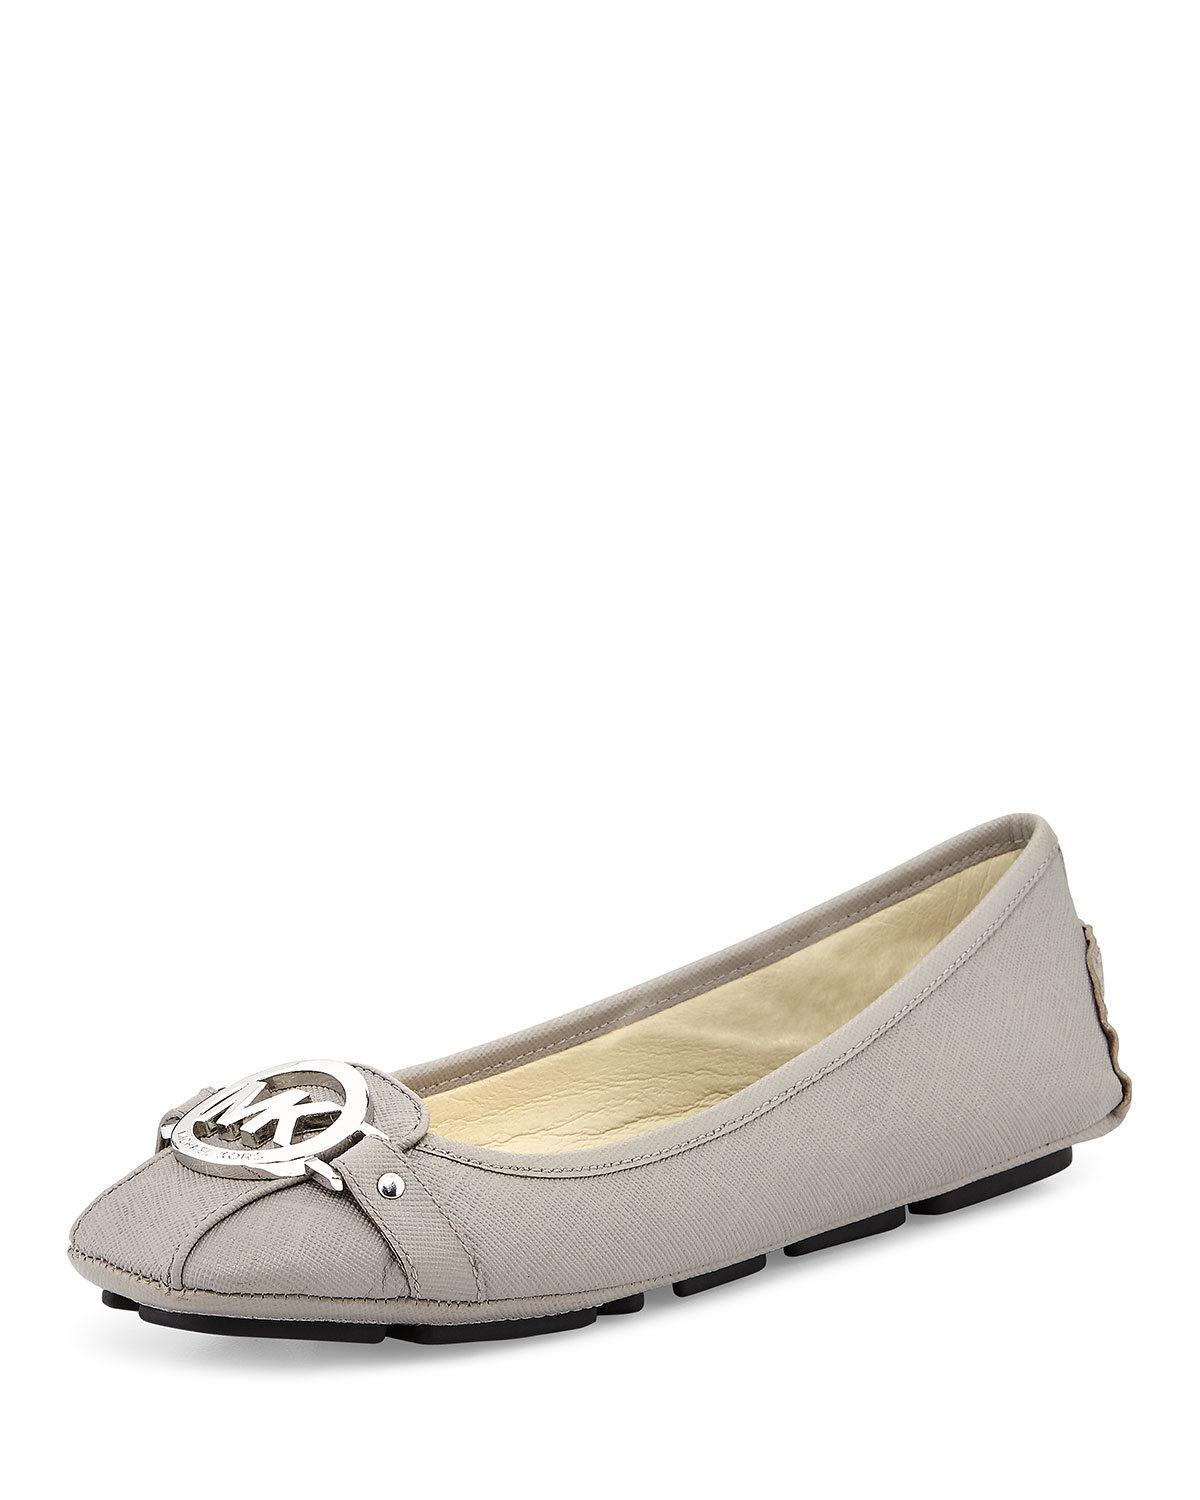 Michael Kors Flats Shoes Uk